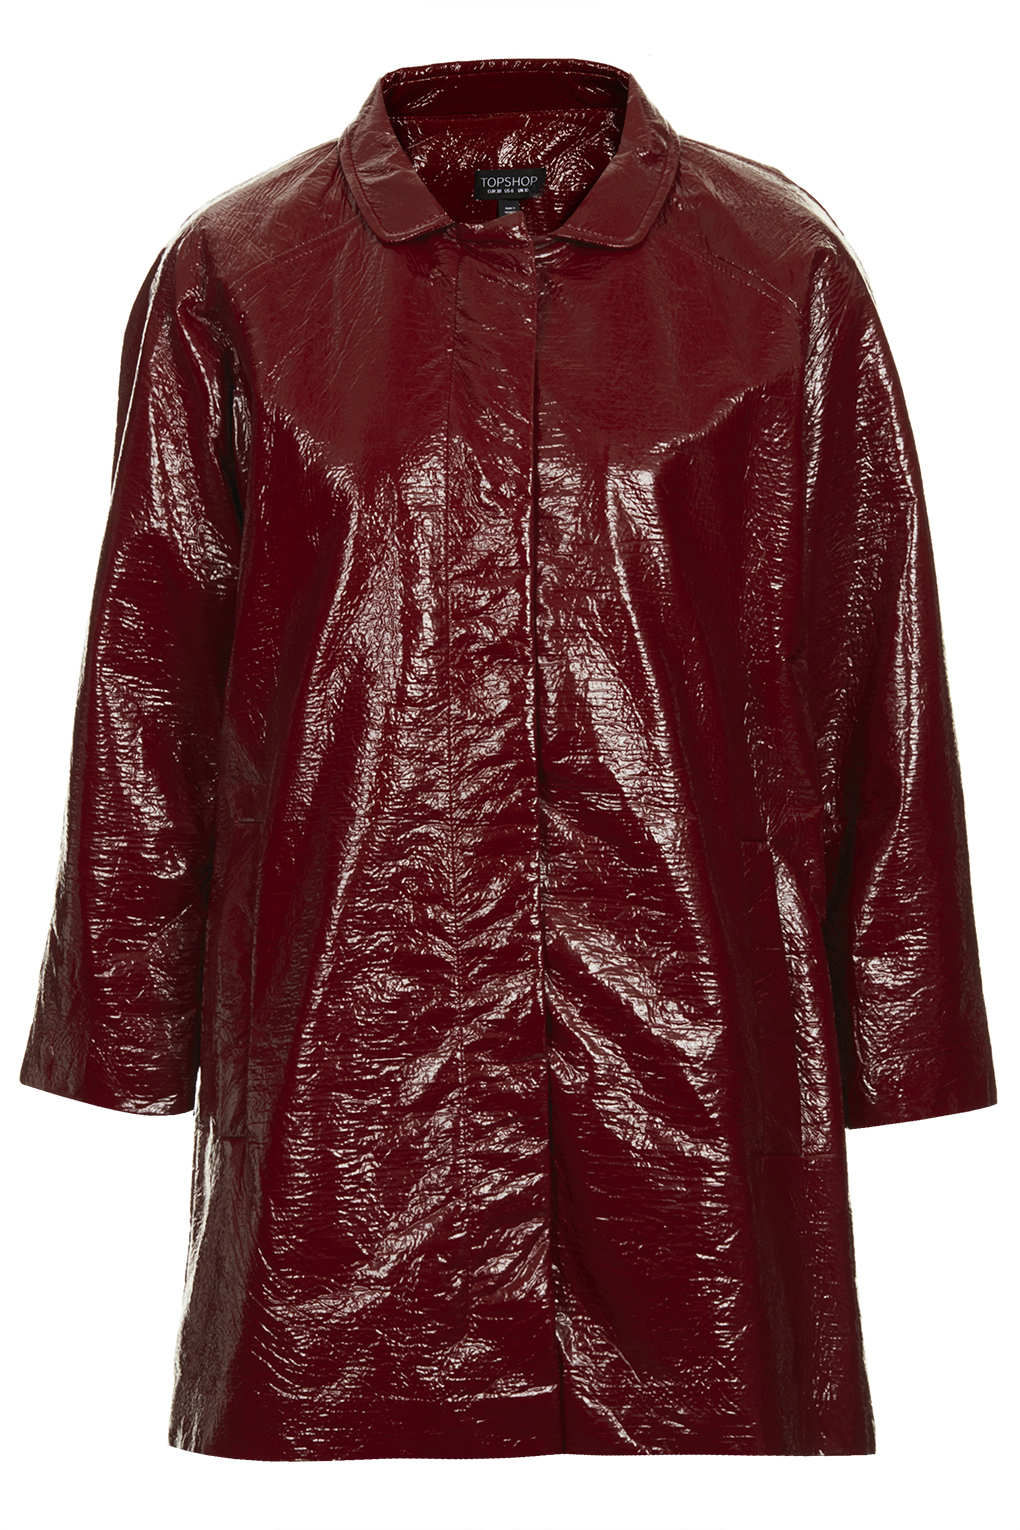 Topshop Vinyl Coat In Red Lyst